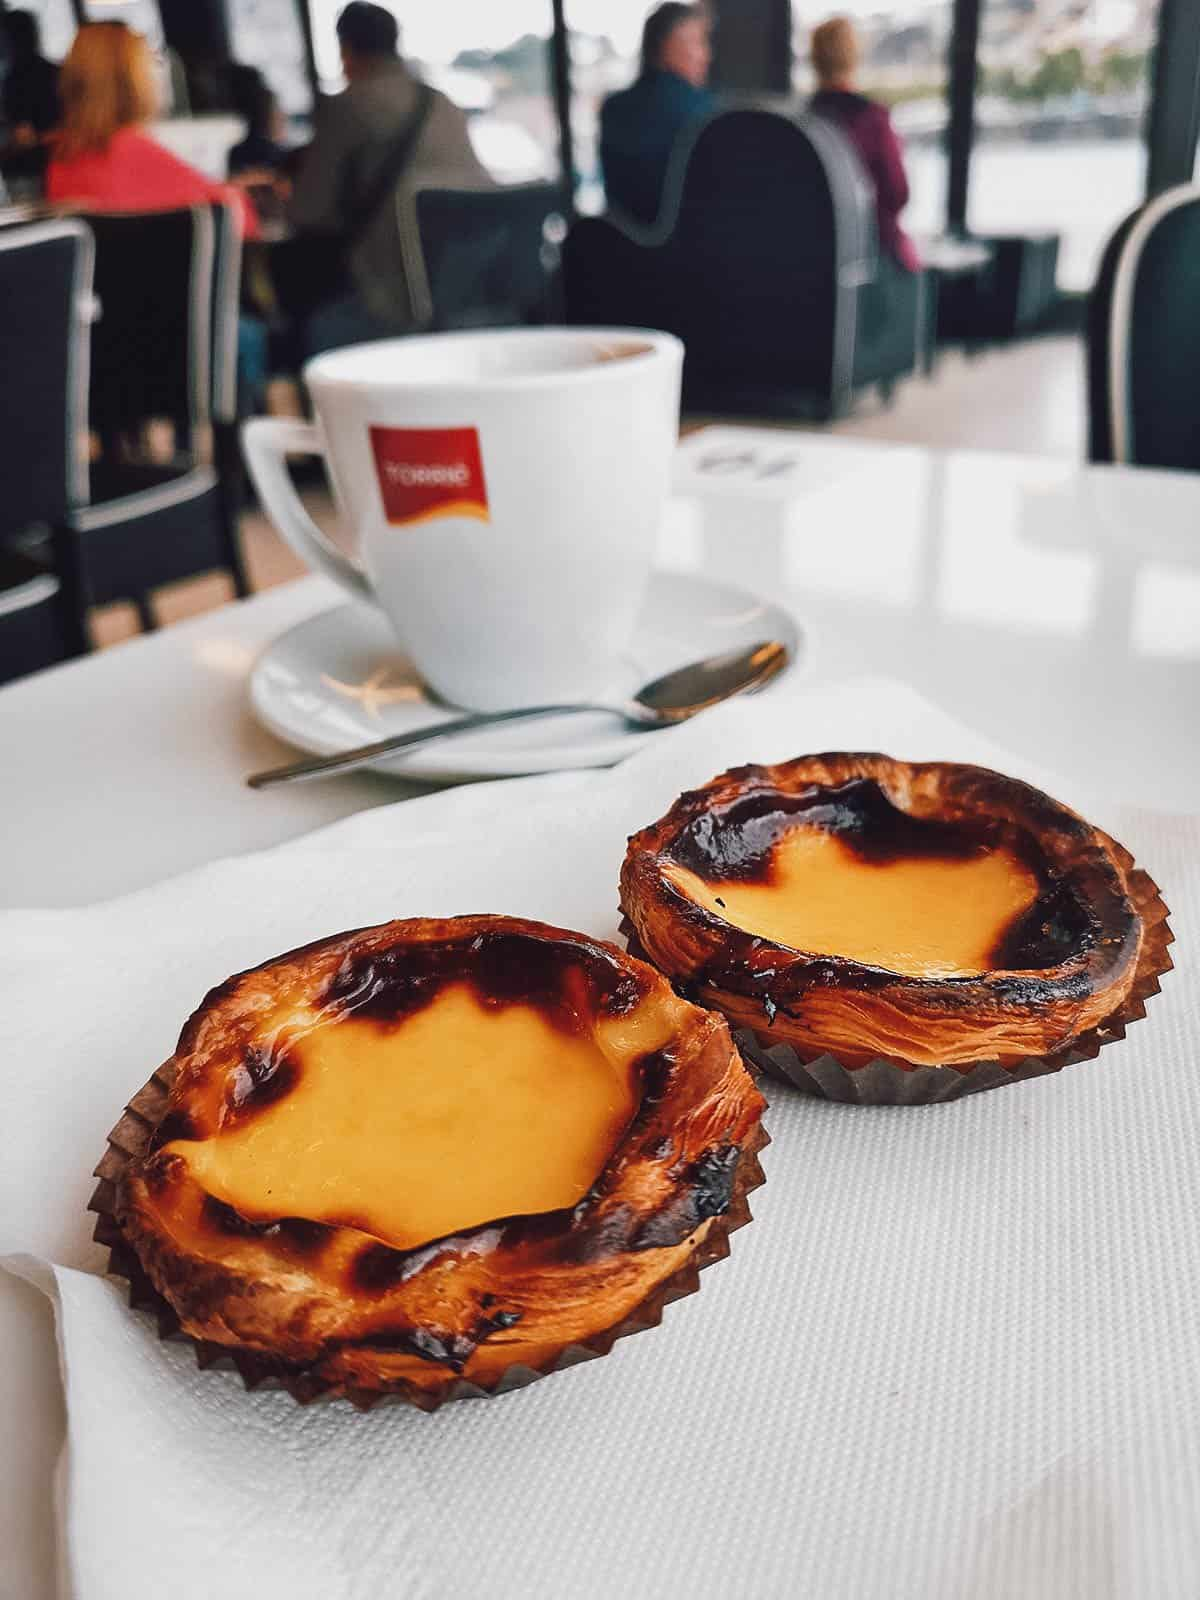 Pasteis de nata with coffee